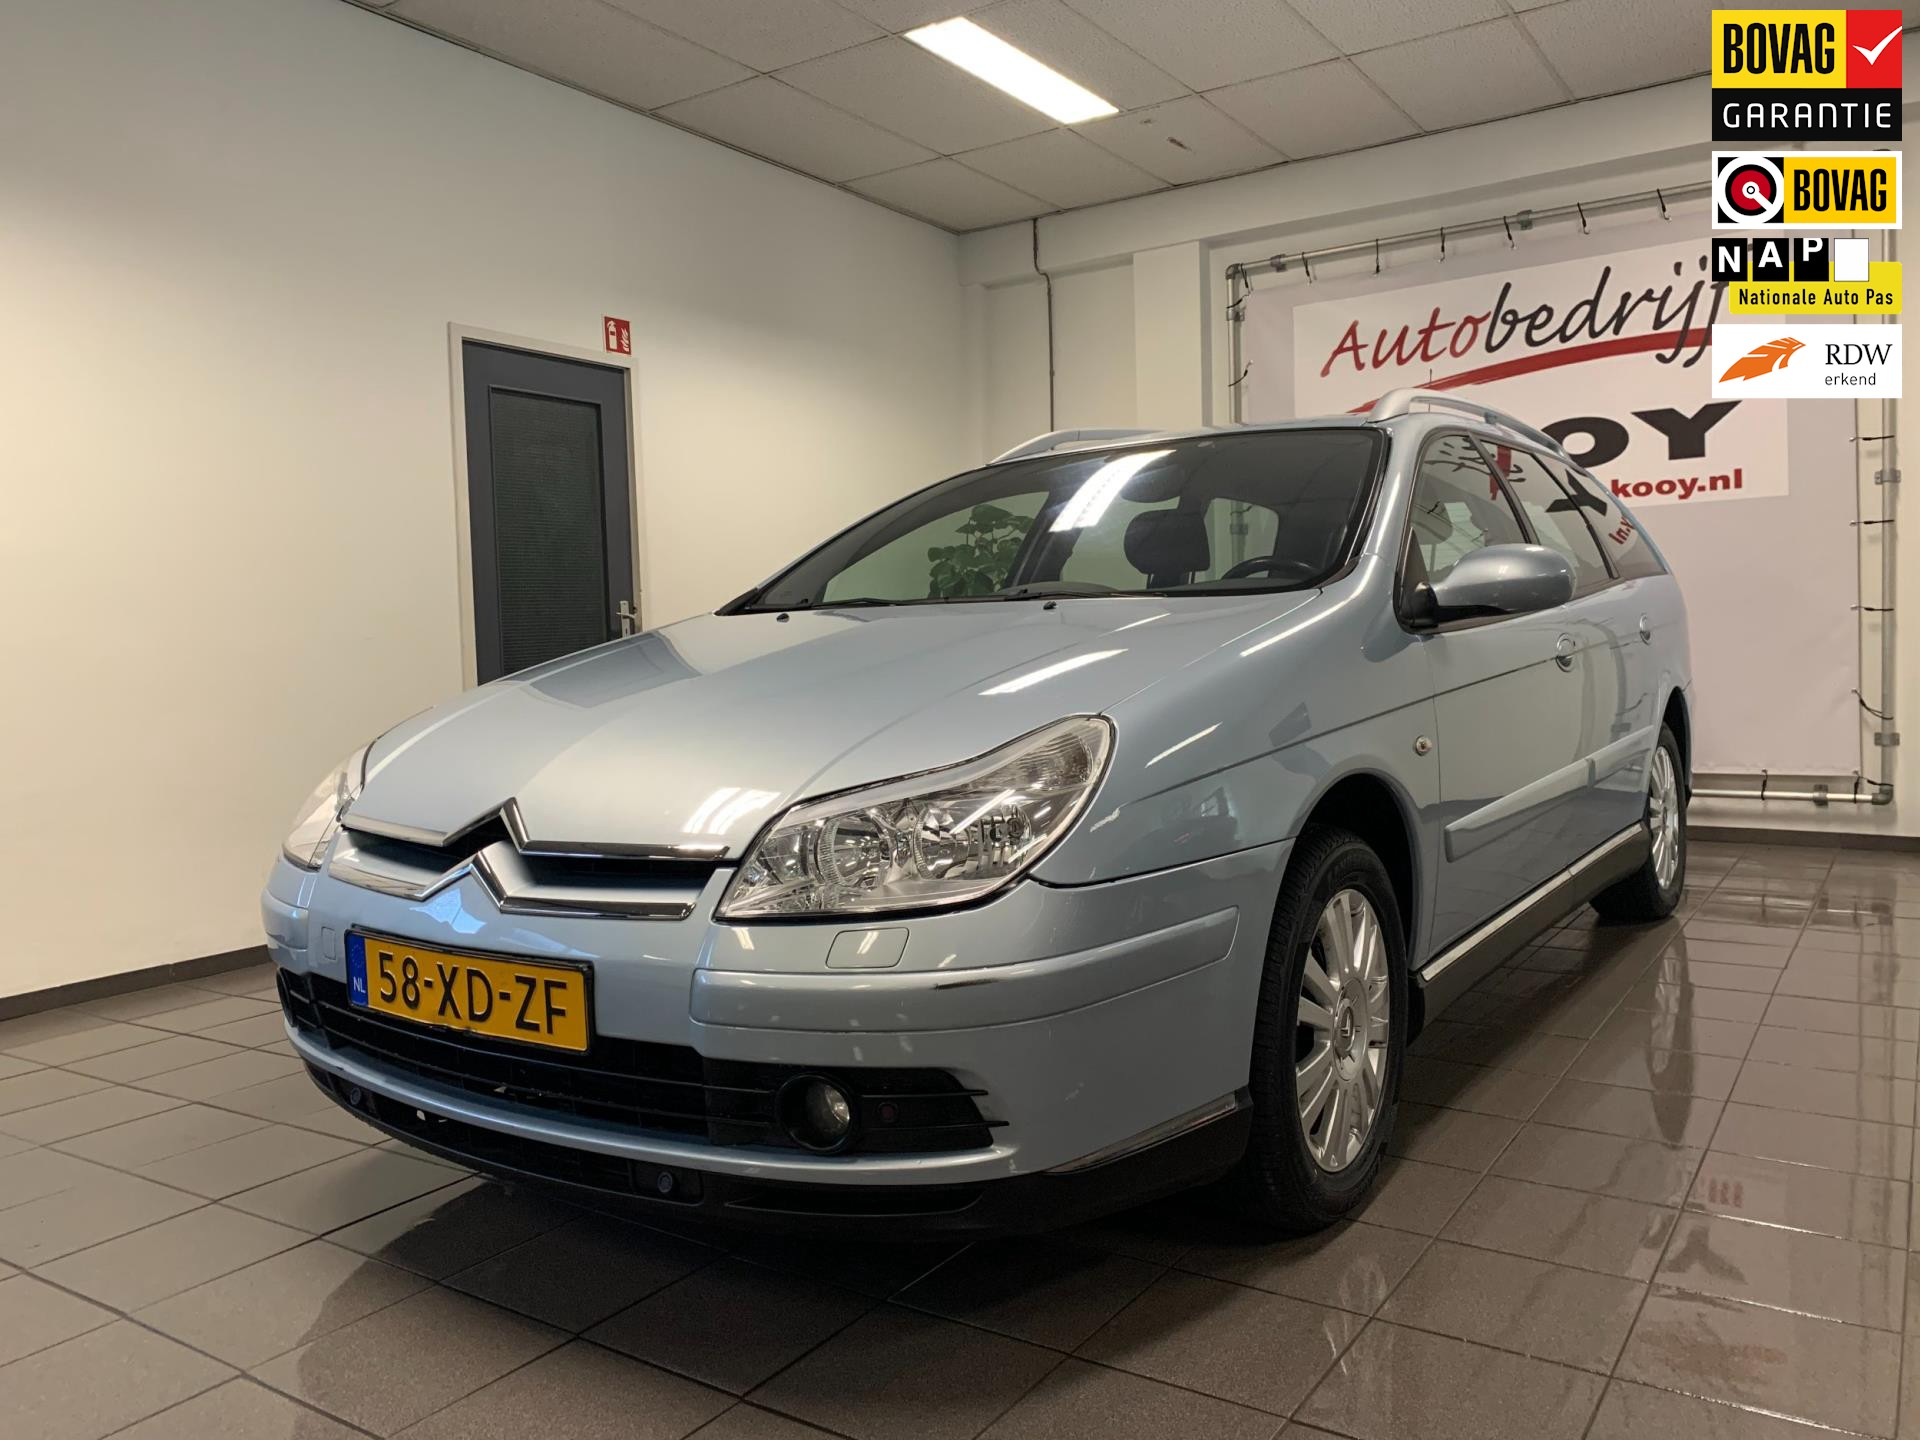 Citroen C5 Break 2.0-16V Ligne Business * Goed onderhouden / Airco-ecc / Cruise control *